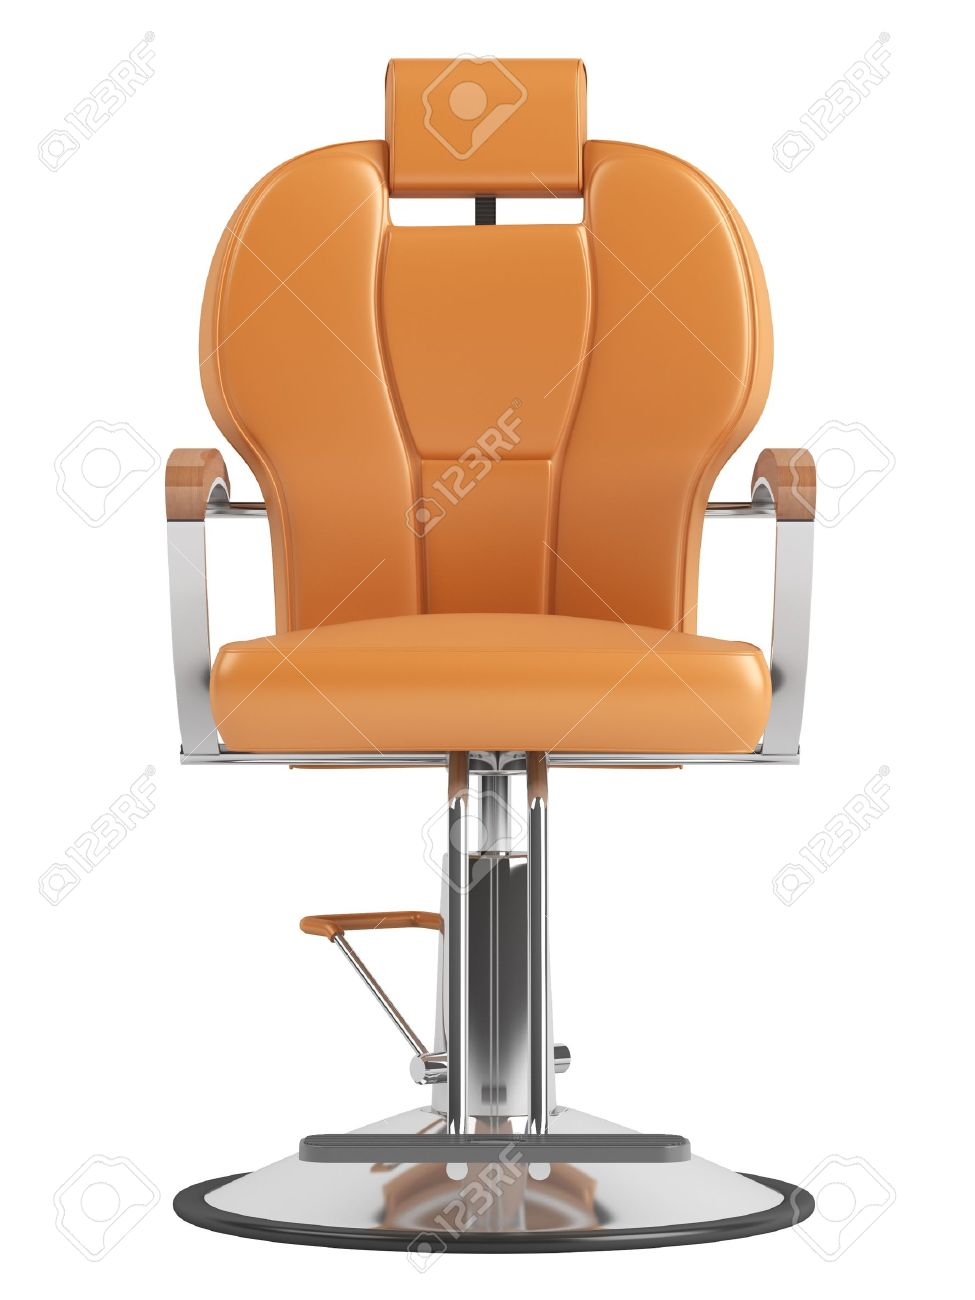 Hair salon chair isolated stock photos illustrations and vector art - Barbershop Chair Orange Hairdressing Salon Chair Isolated On White Background